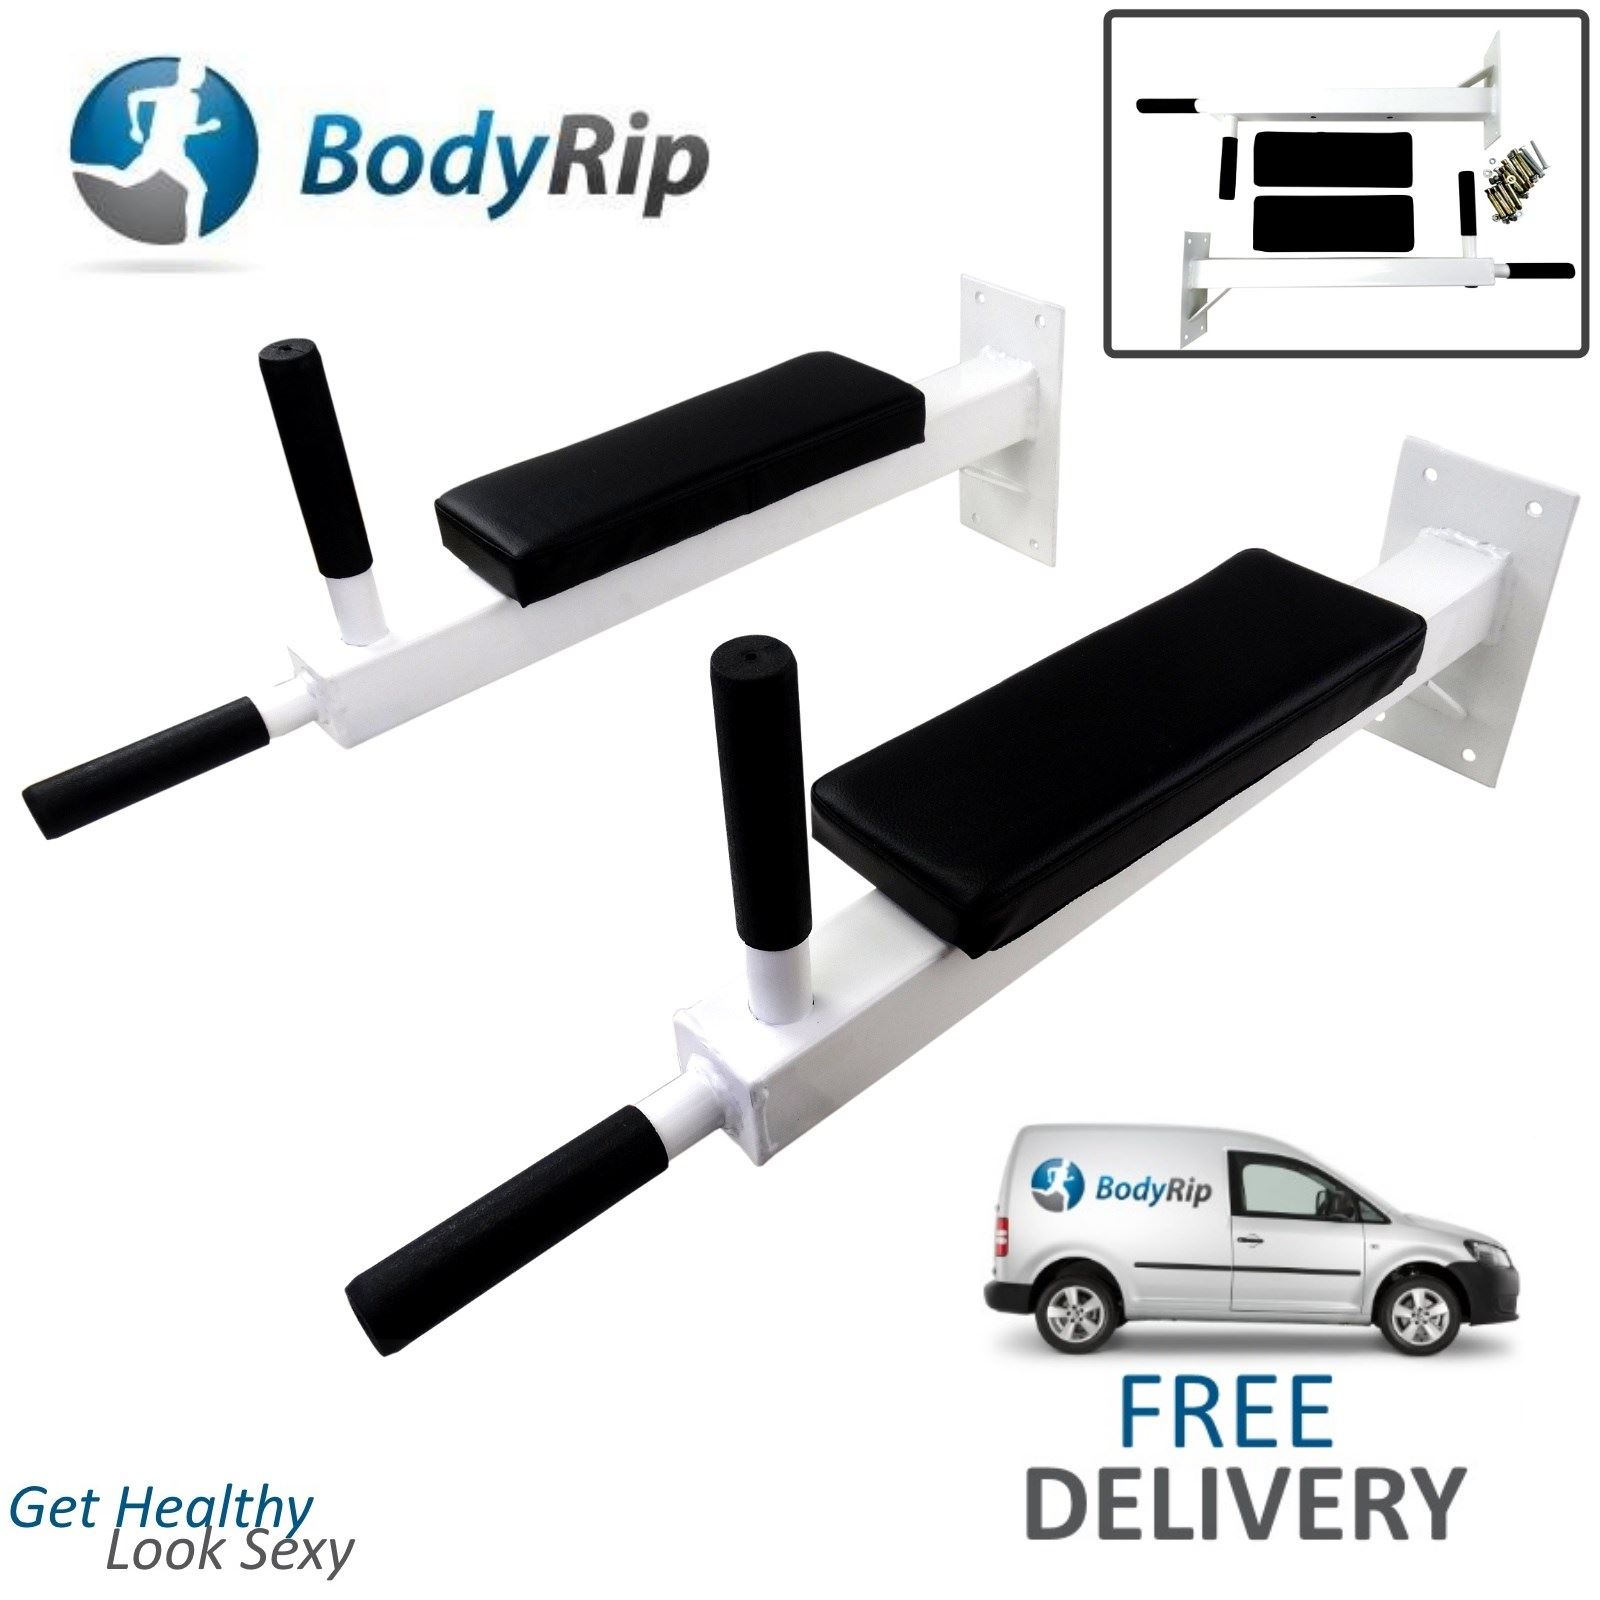 Details about bodyrip wall mounted dip station knee bars leg raise abs